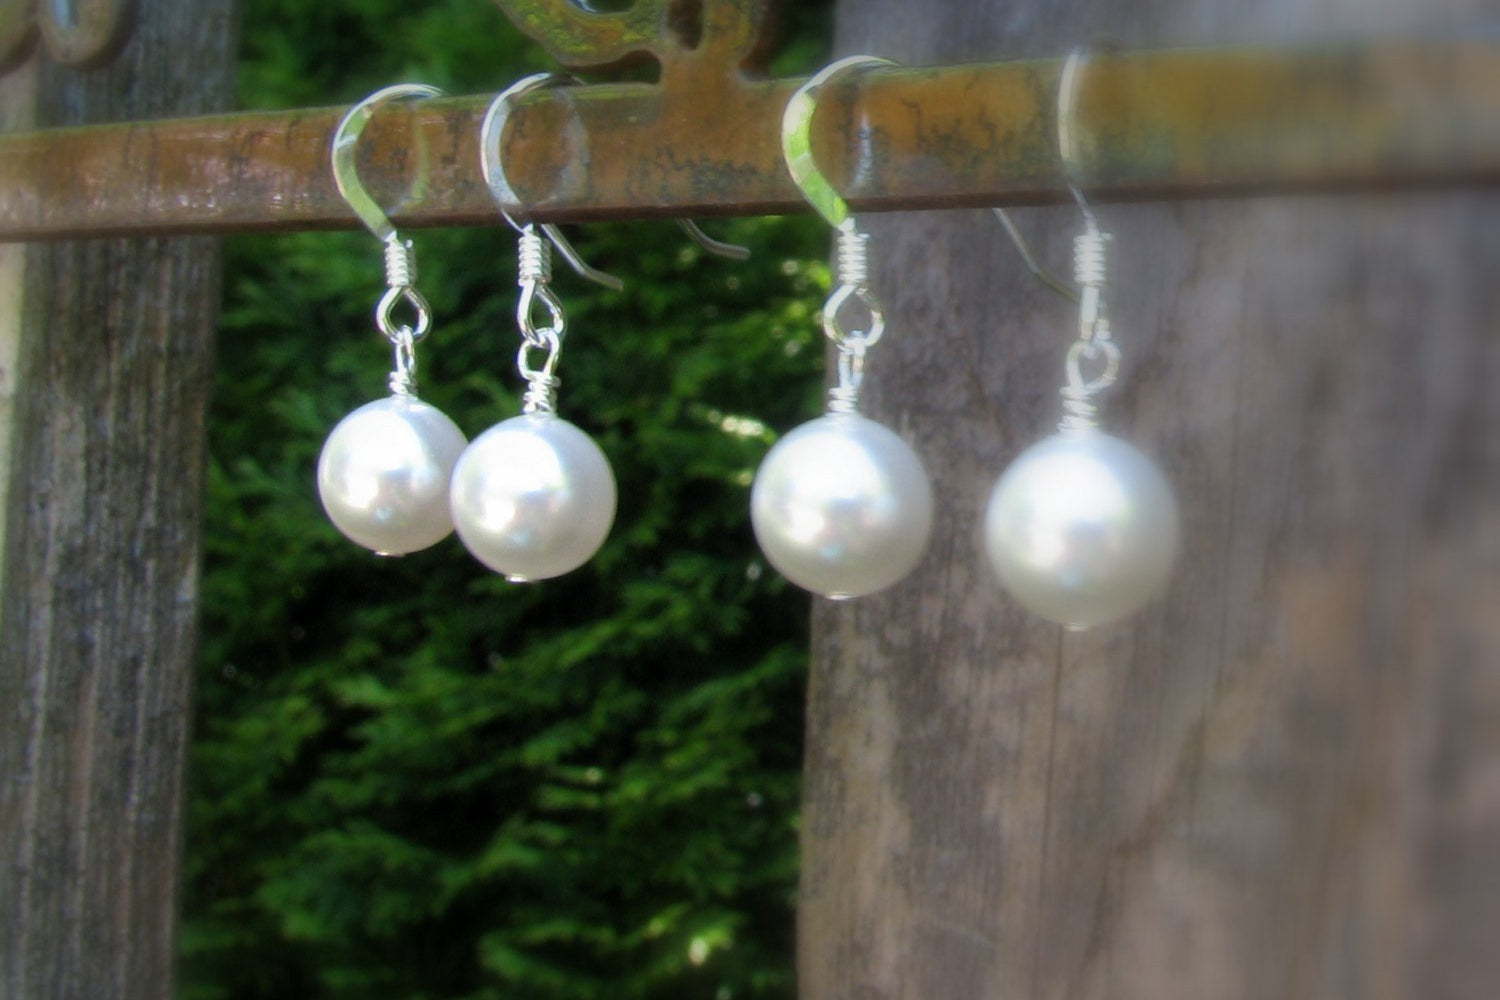 Large Pearl Drop Earrings - Sterling Silver or 14K Gold Filled-Sela+Sage